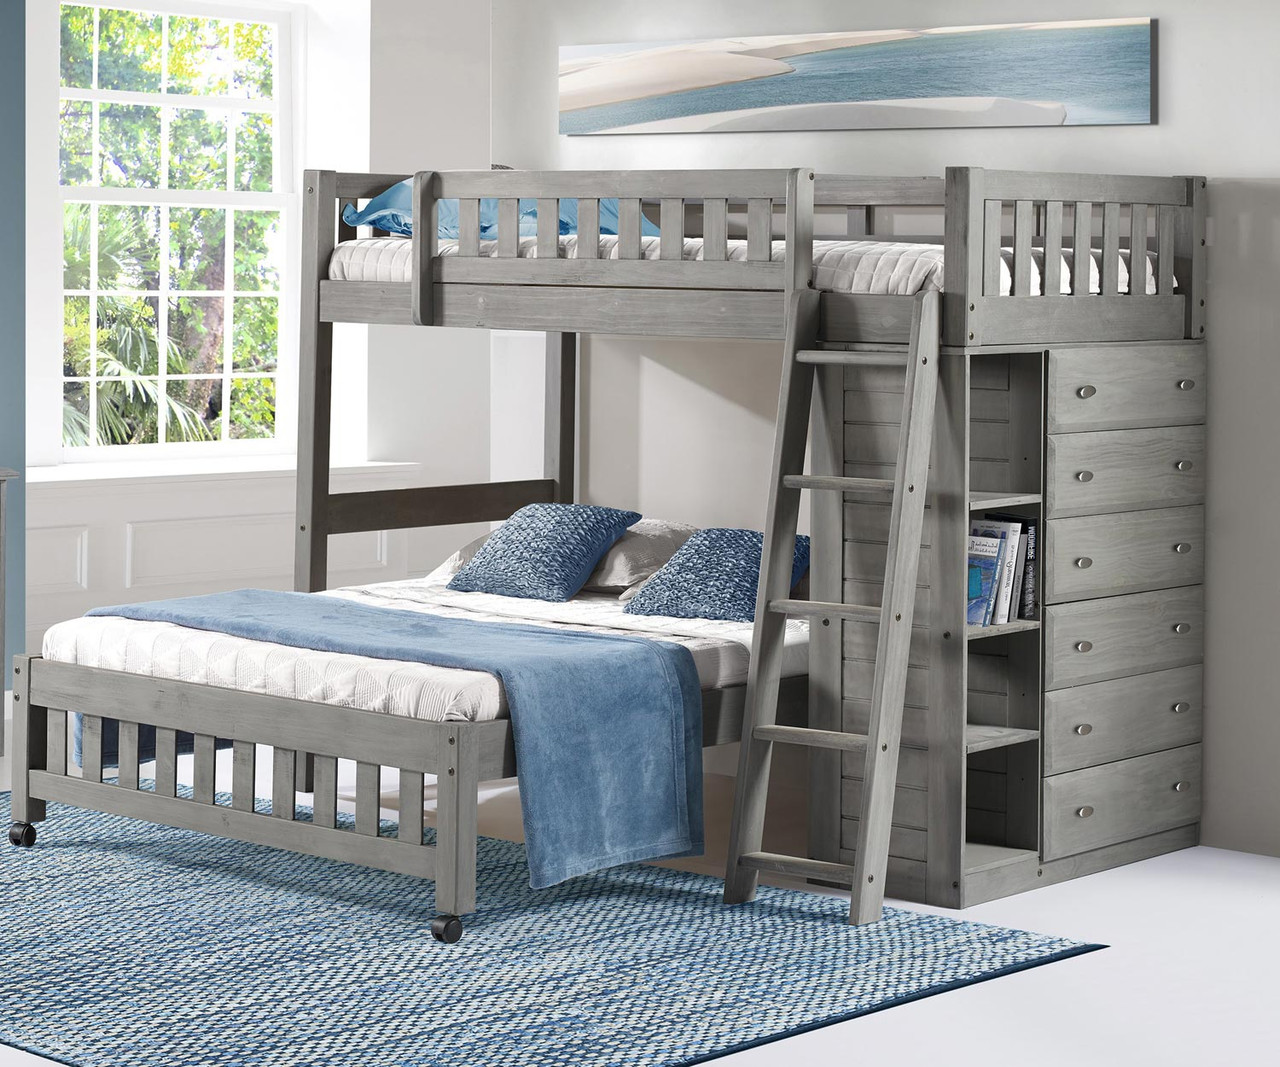 full over full loft bunk beds Cheaper Than Retail Price> Buy Clothing, Accessories and lifestyle products for women & men -